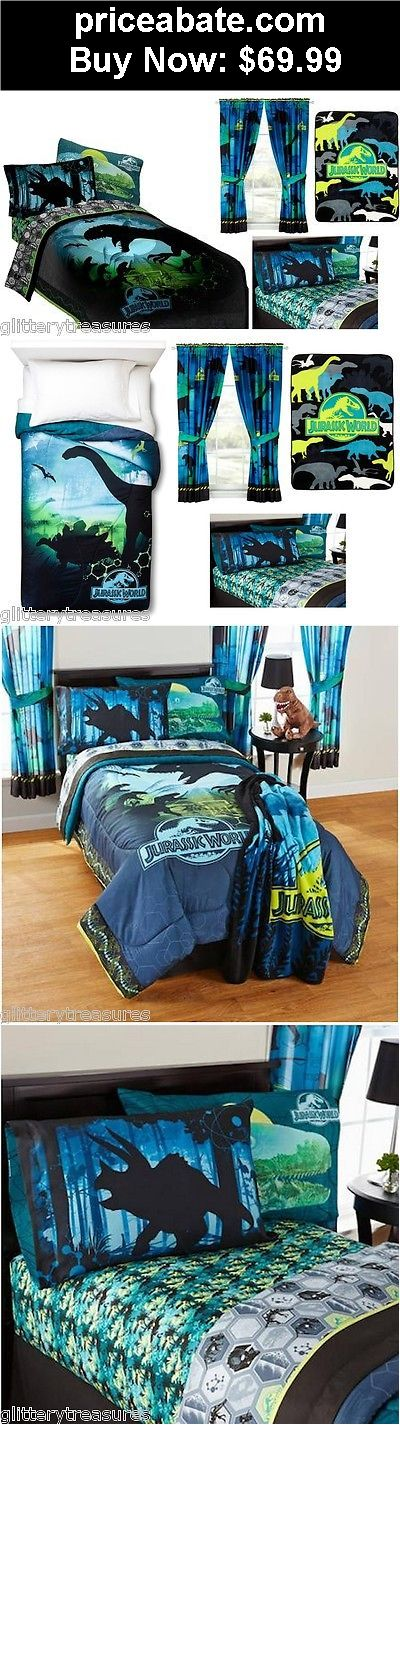 Kids-Bedding: KIDS GIRLS BOYS  JURASSIC WORLD DINOSAURS BED IN A BAG / COMFORTER SET- 2 PRINTS - BUY IT NOW ONLY $69.99